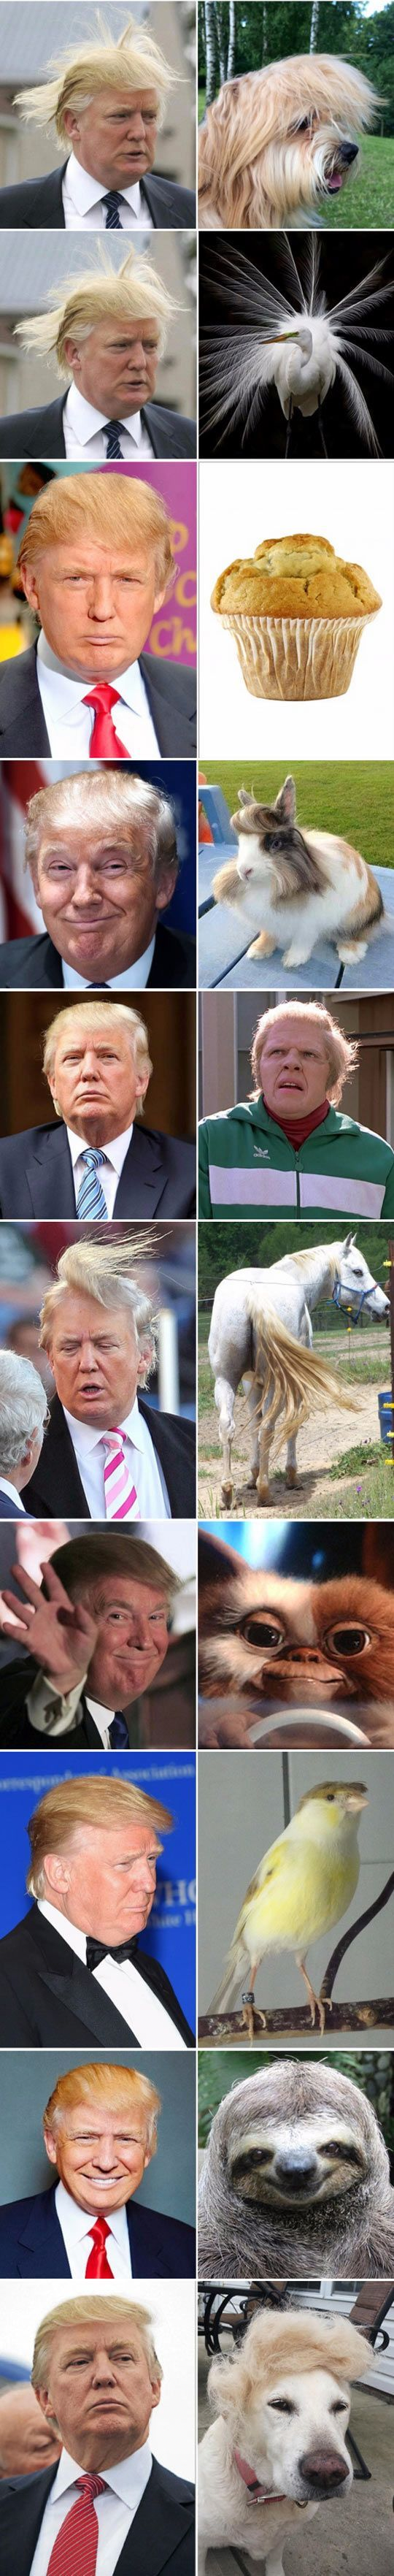 Donald Trump hair:✖️More Pins Like This One At FOSTERGINGER @ Pinterest ✖️Fosterginger.Pinterest.Com.✖️No Pin Limits✖️